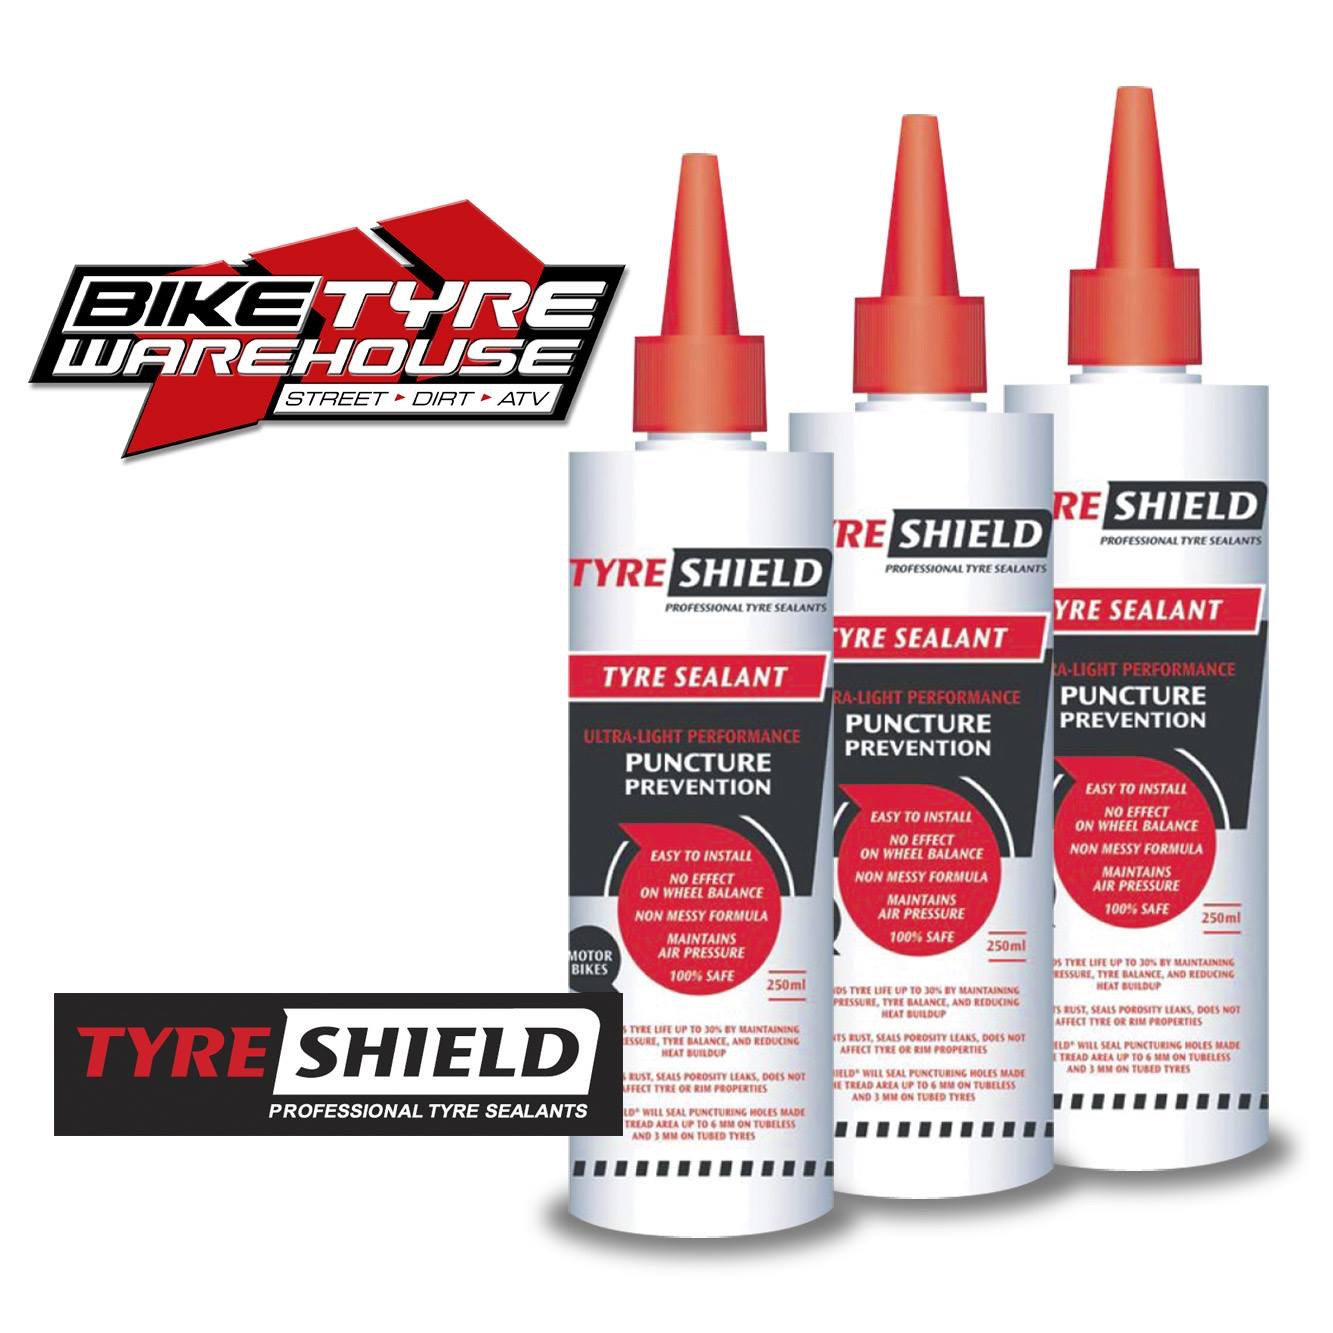 Tyre Shield Bike Tyre Warehouse